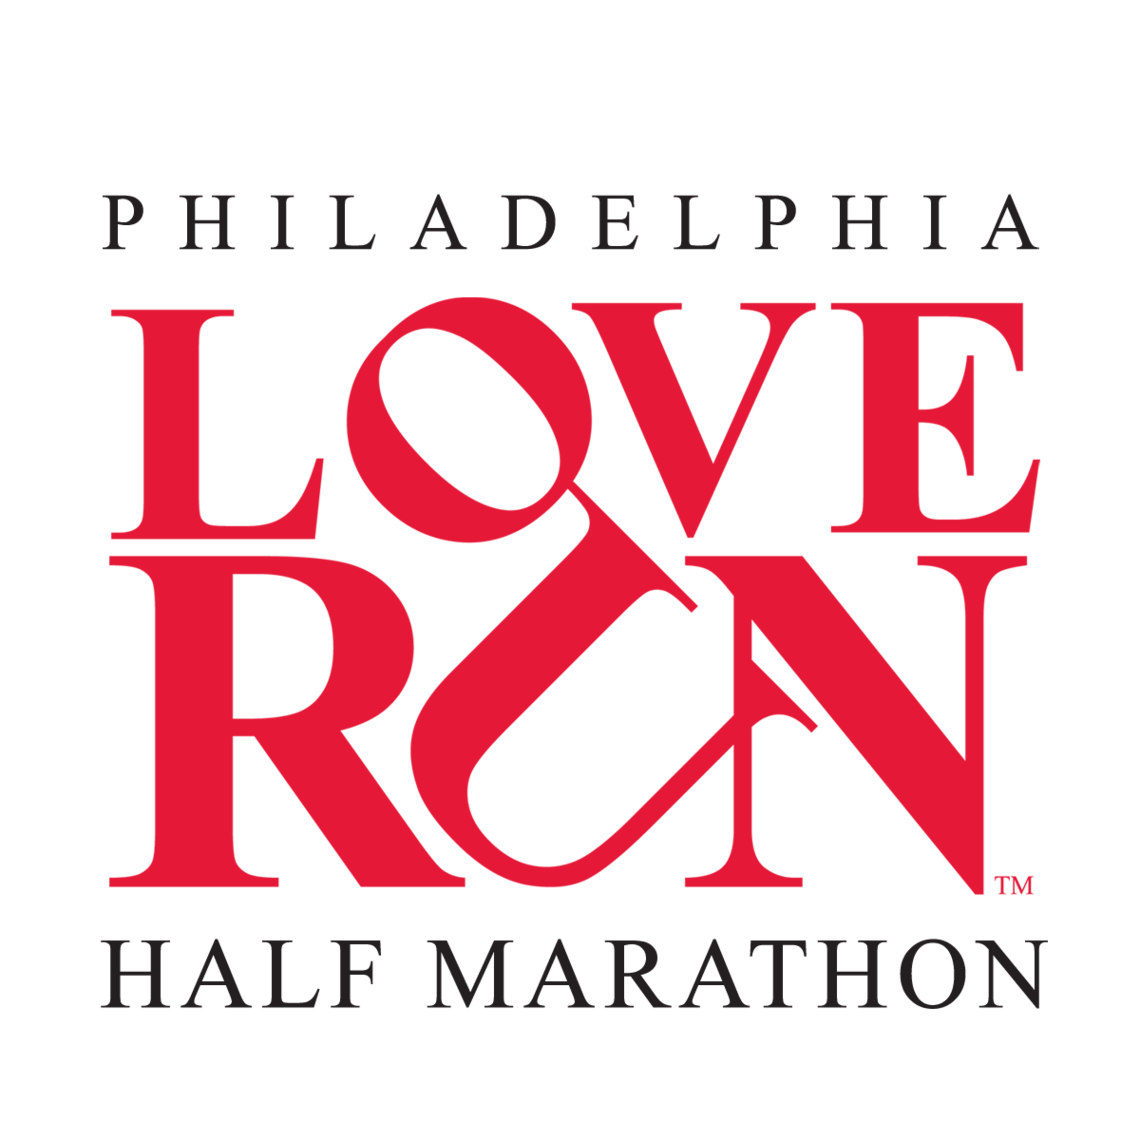 red and black love run logo